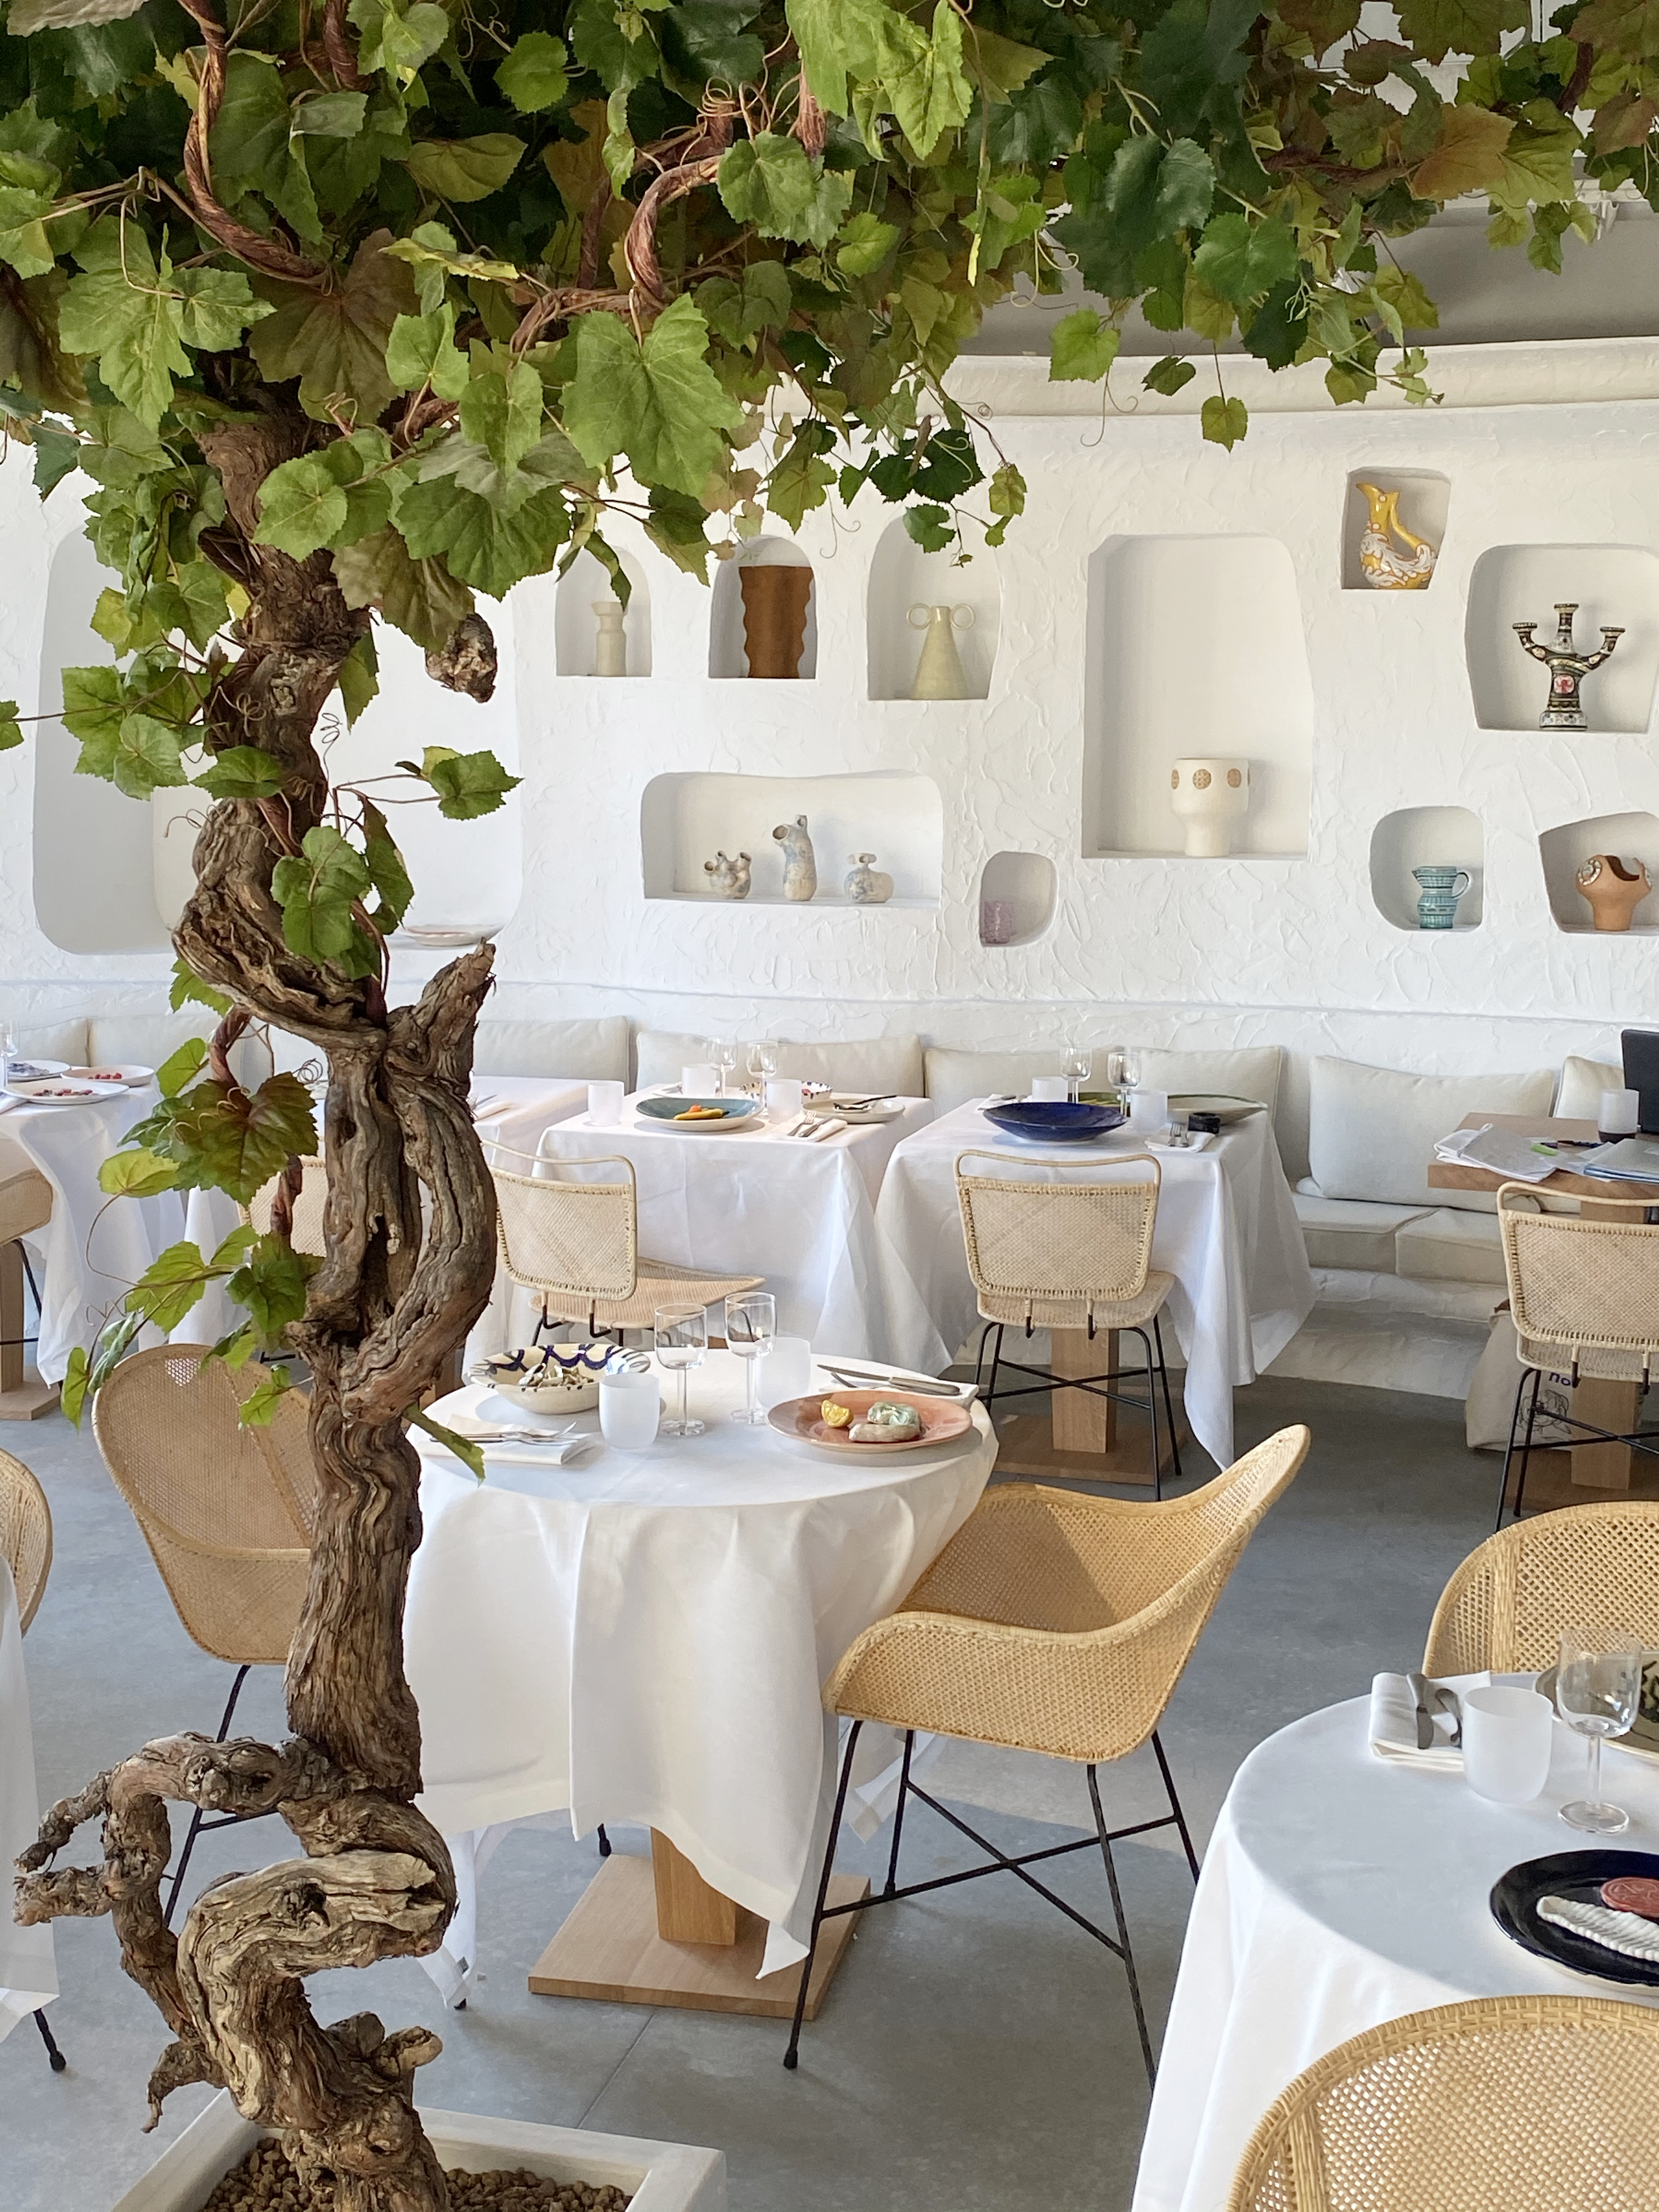 The Oursin restaurant by Jacquemus